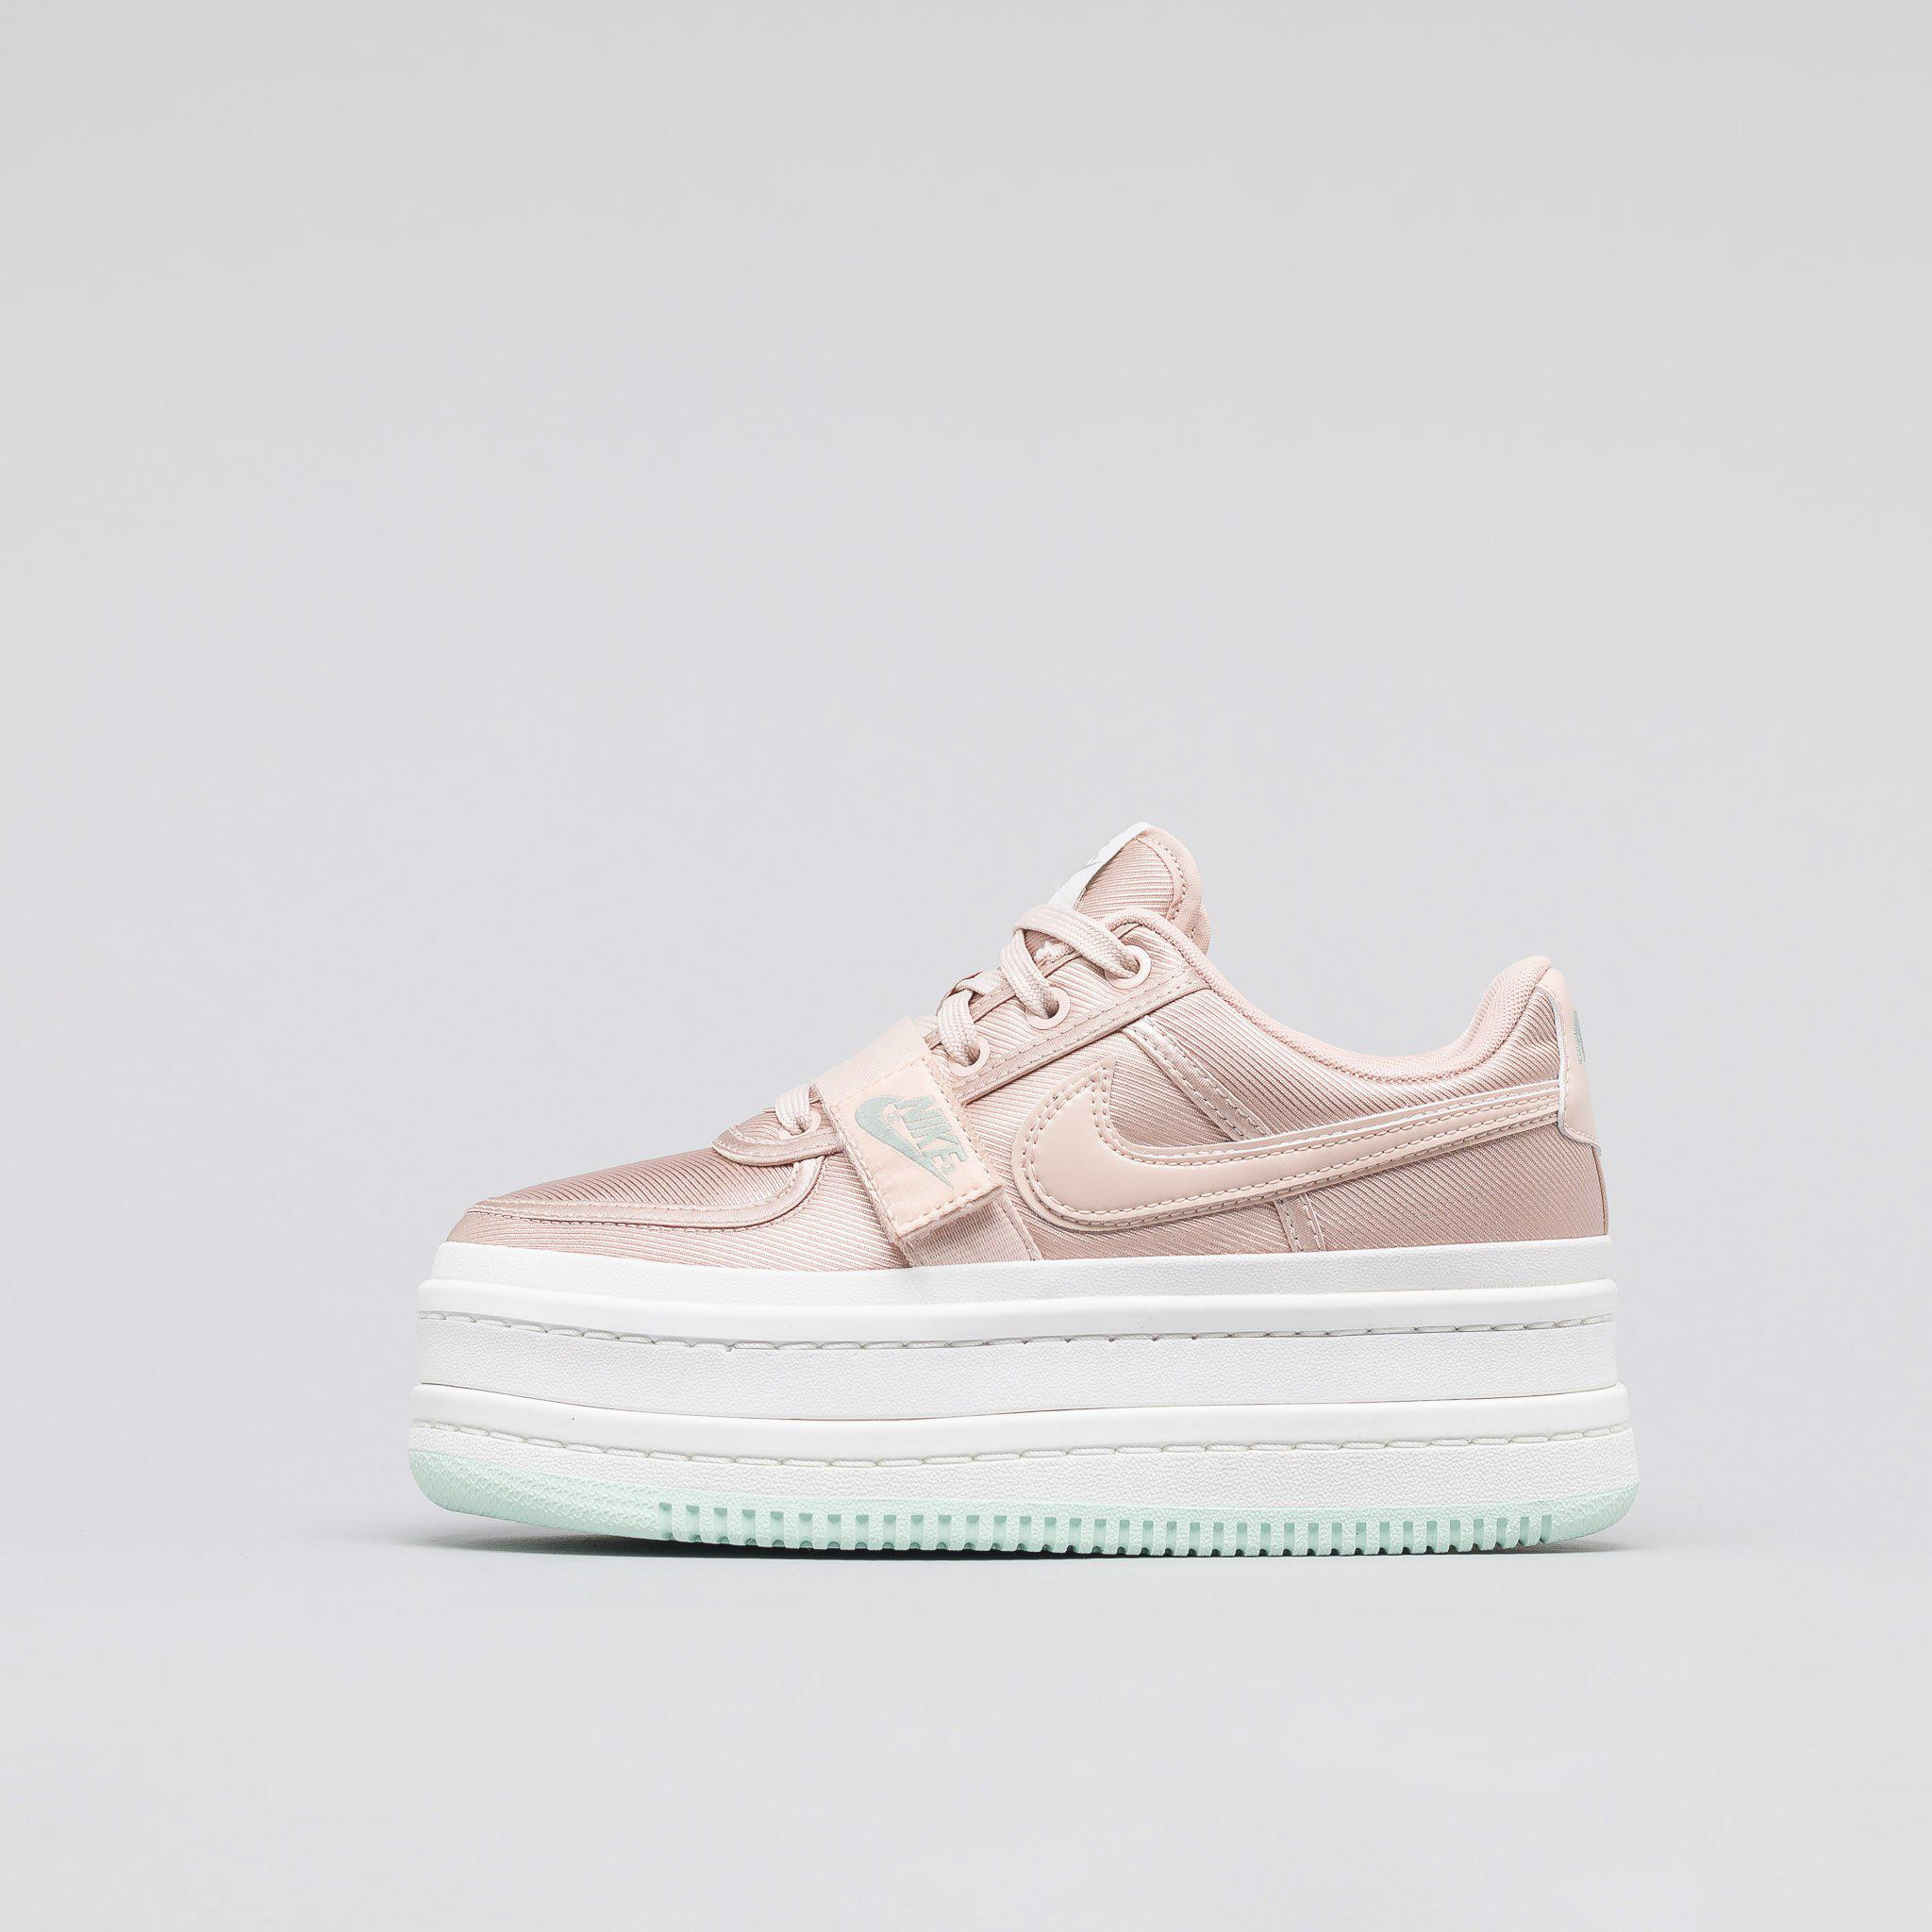 Lyst - Nike Women s Vandal 2k In Particle Beige in Natural for Men 8d9a1e62a